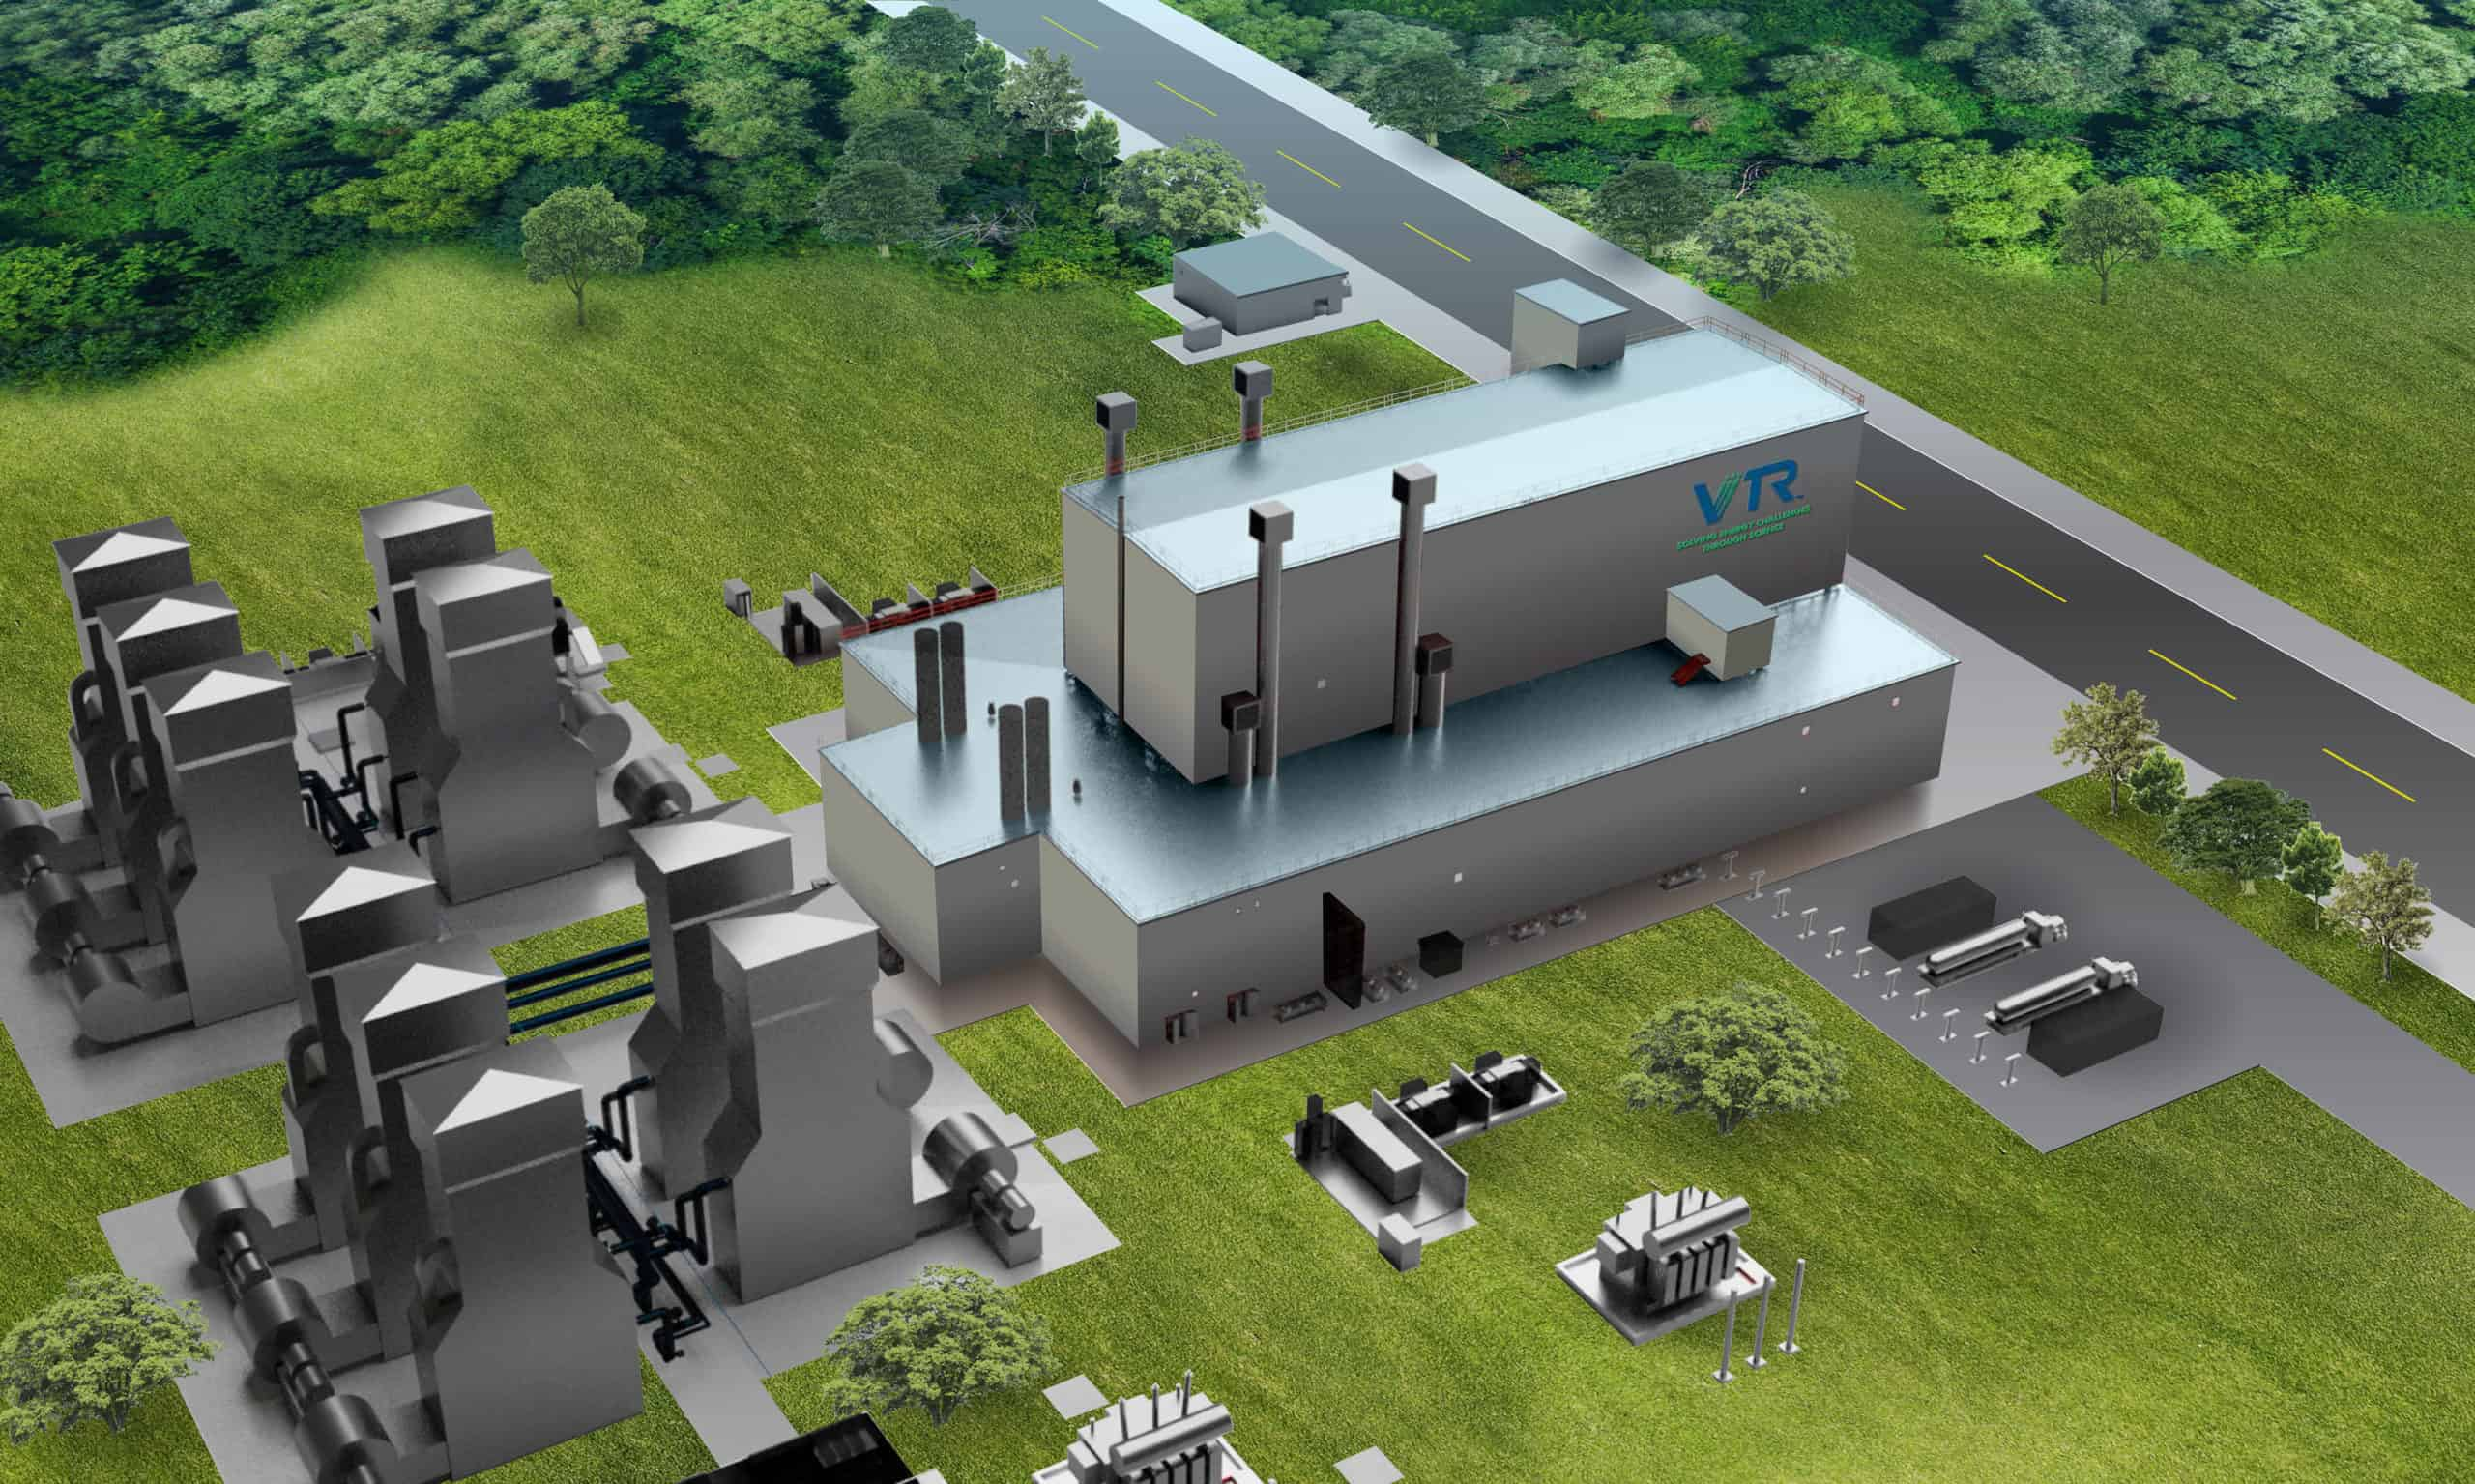 Versatile Test Reactor (VTR) facility rendering from above